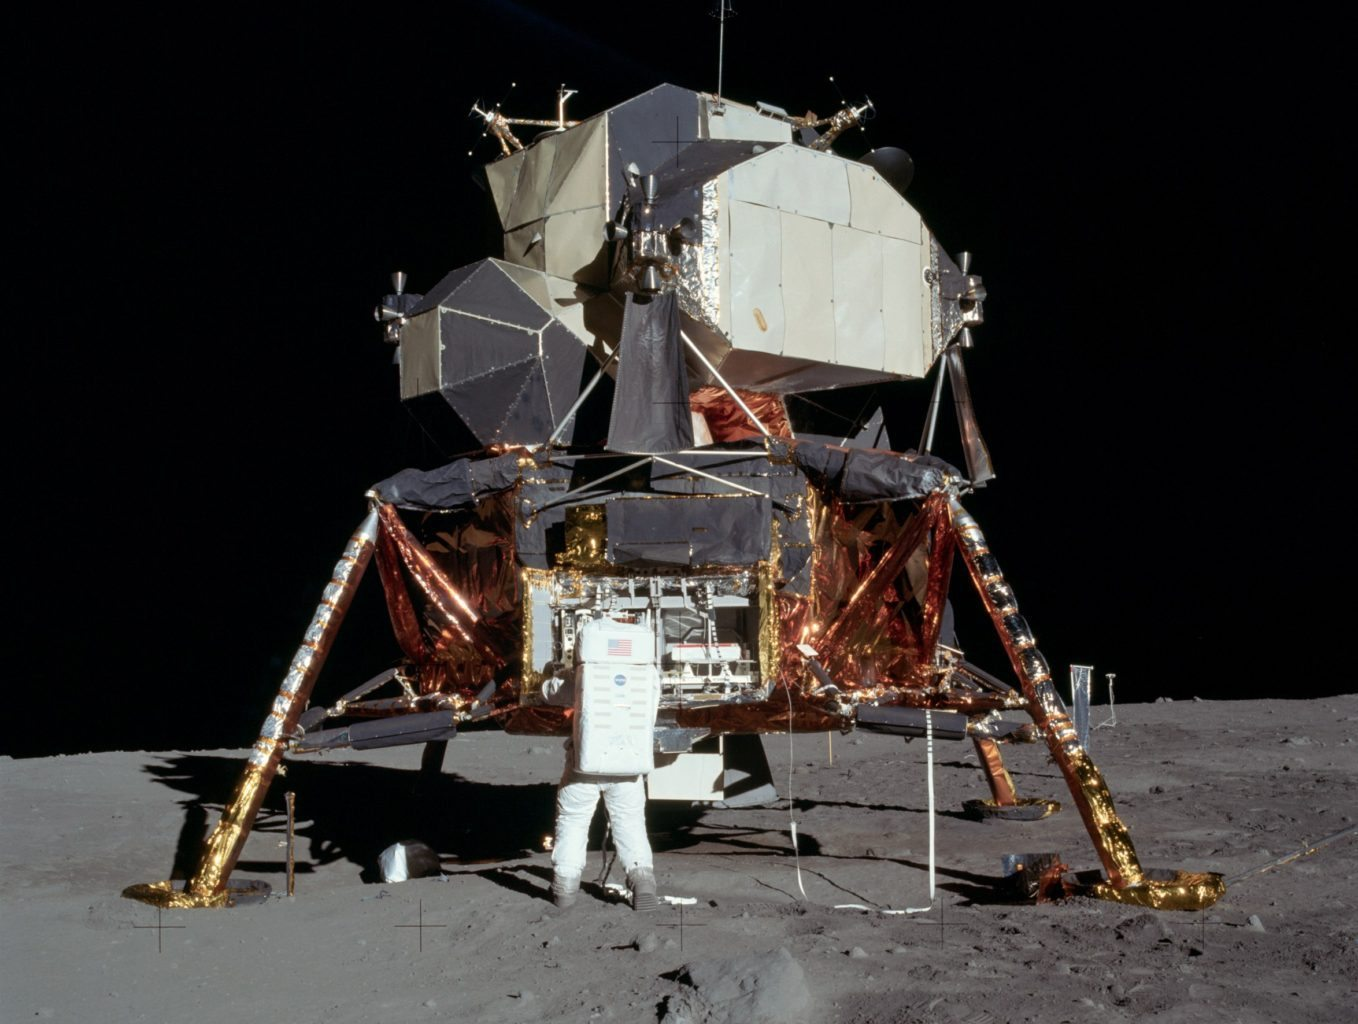 Image: Apollo 11 lunar lander on the moon